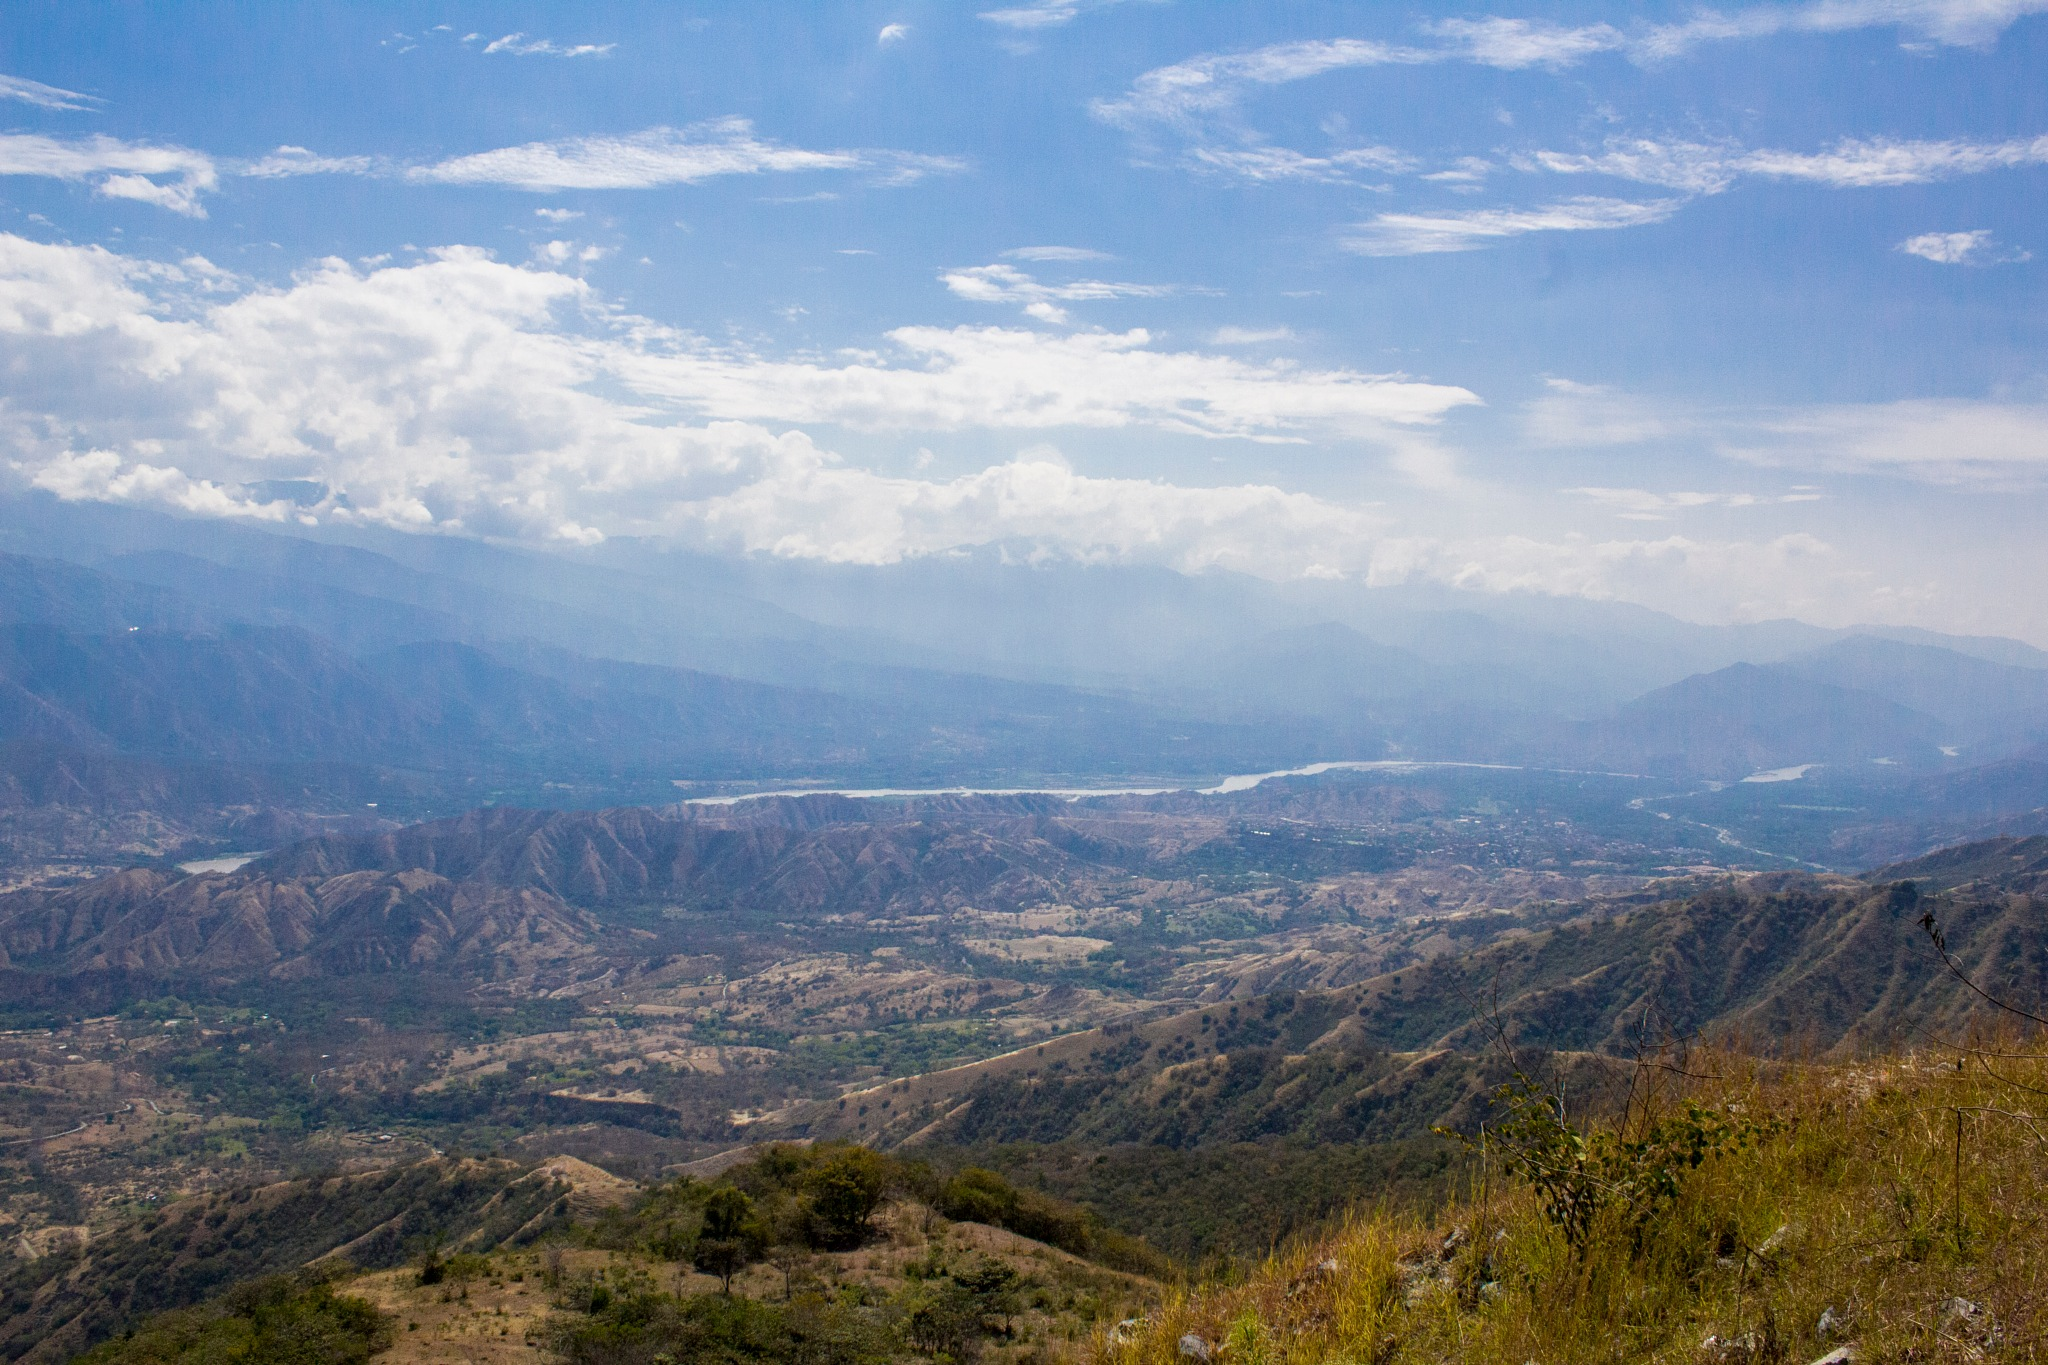 The mountains of Antioquia - Colombia by Luis Fdo Gomez